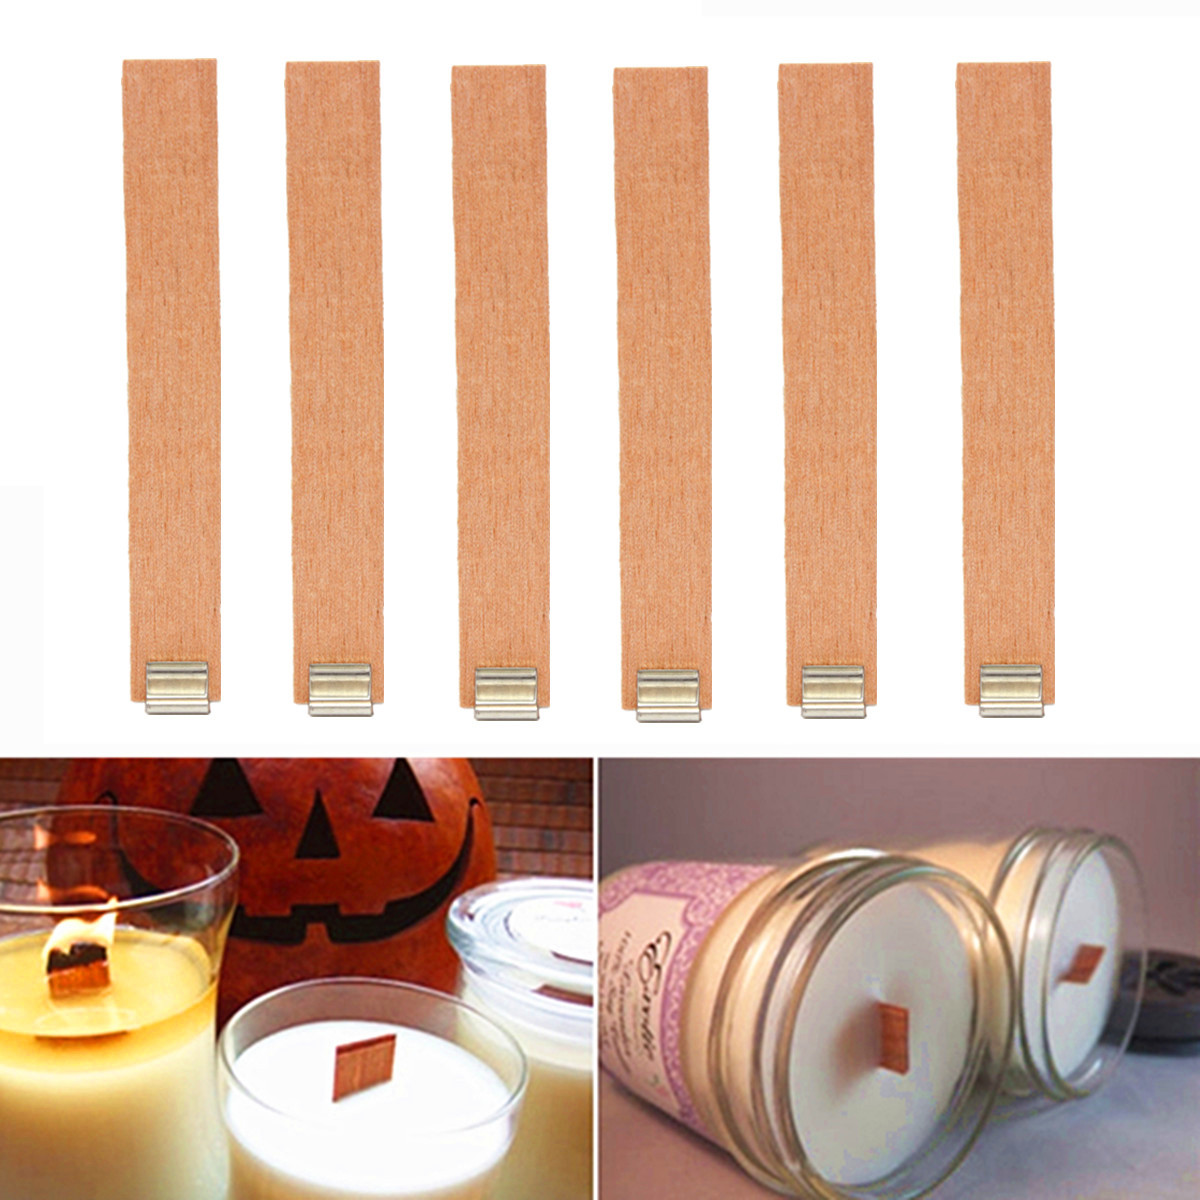 Wooden Candle Wicks Diy: 50PCS DIY Candle Making Wooden Candles Wick With Sustainer